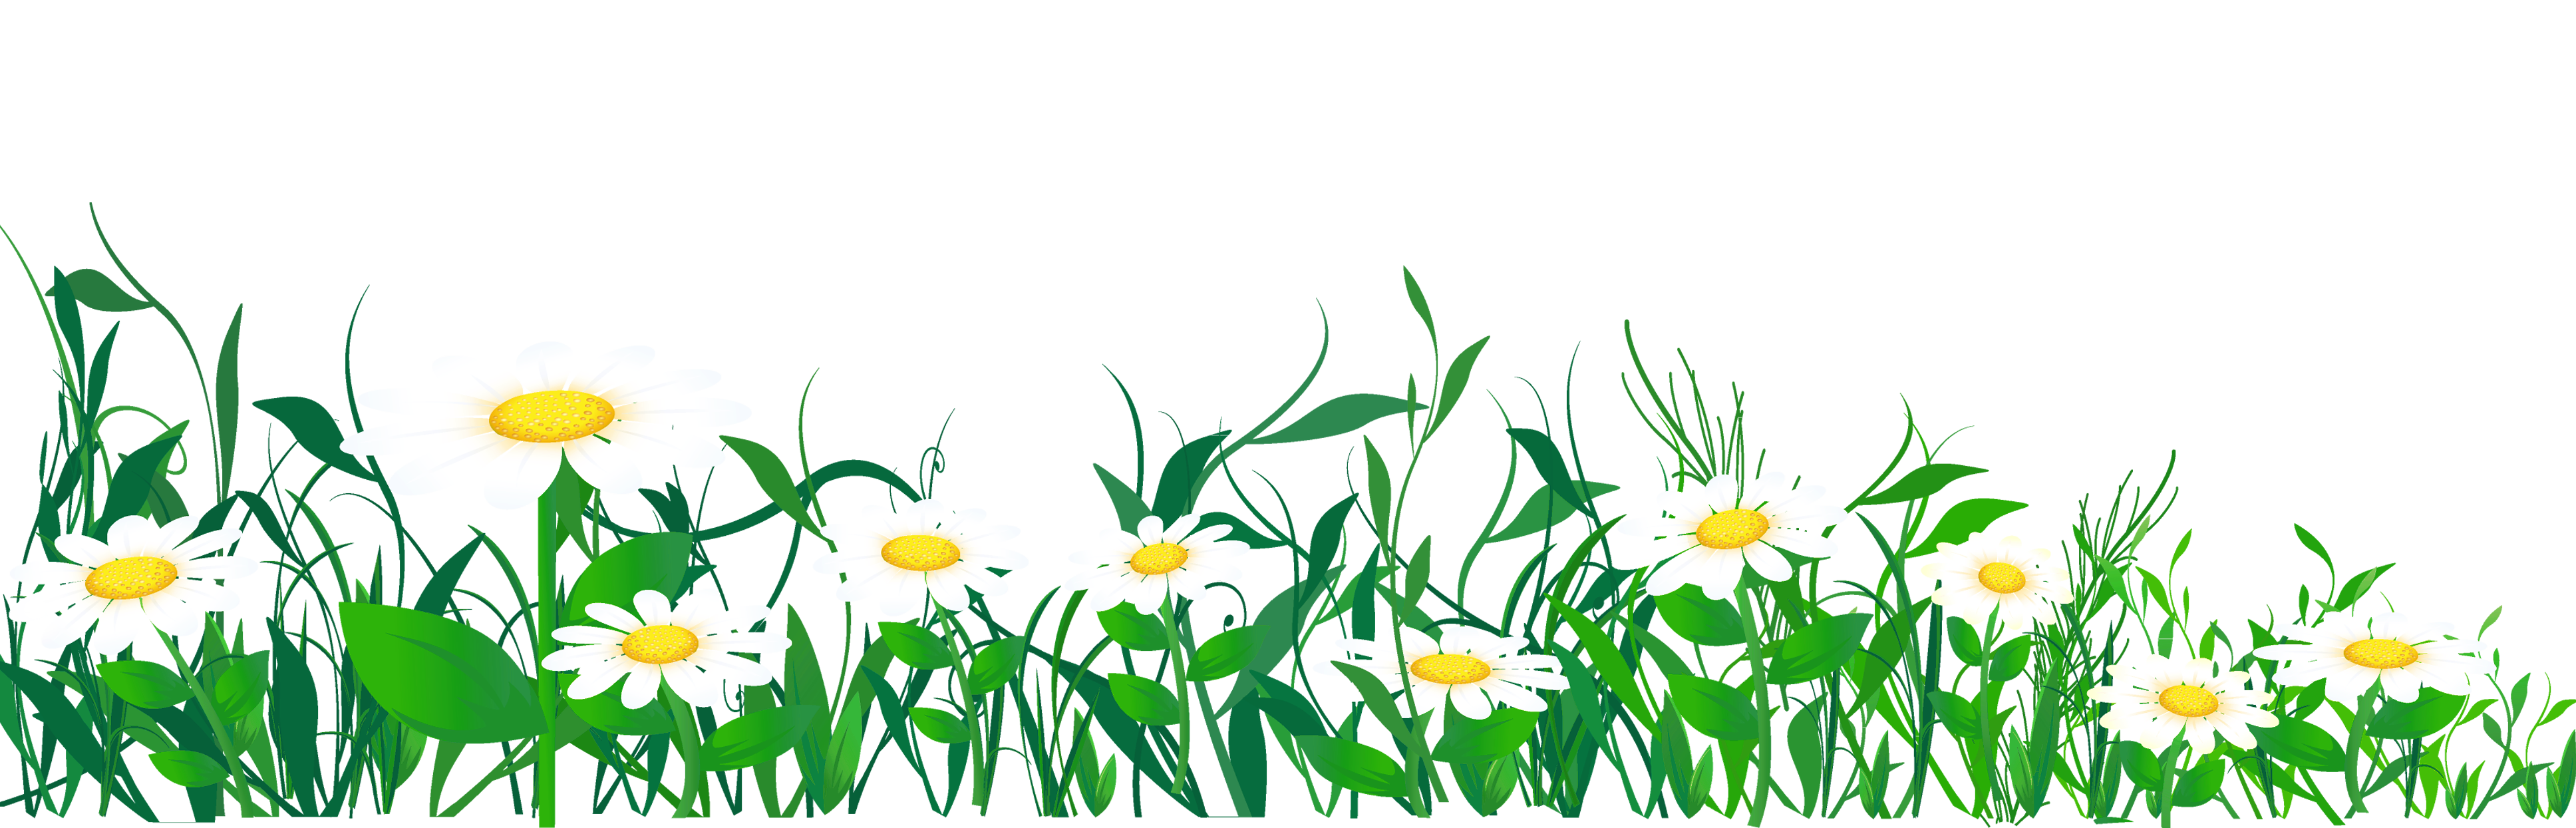 Daisies clipart. And grass png picture